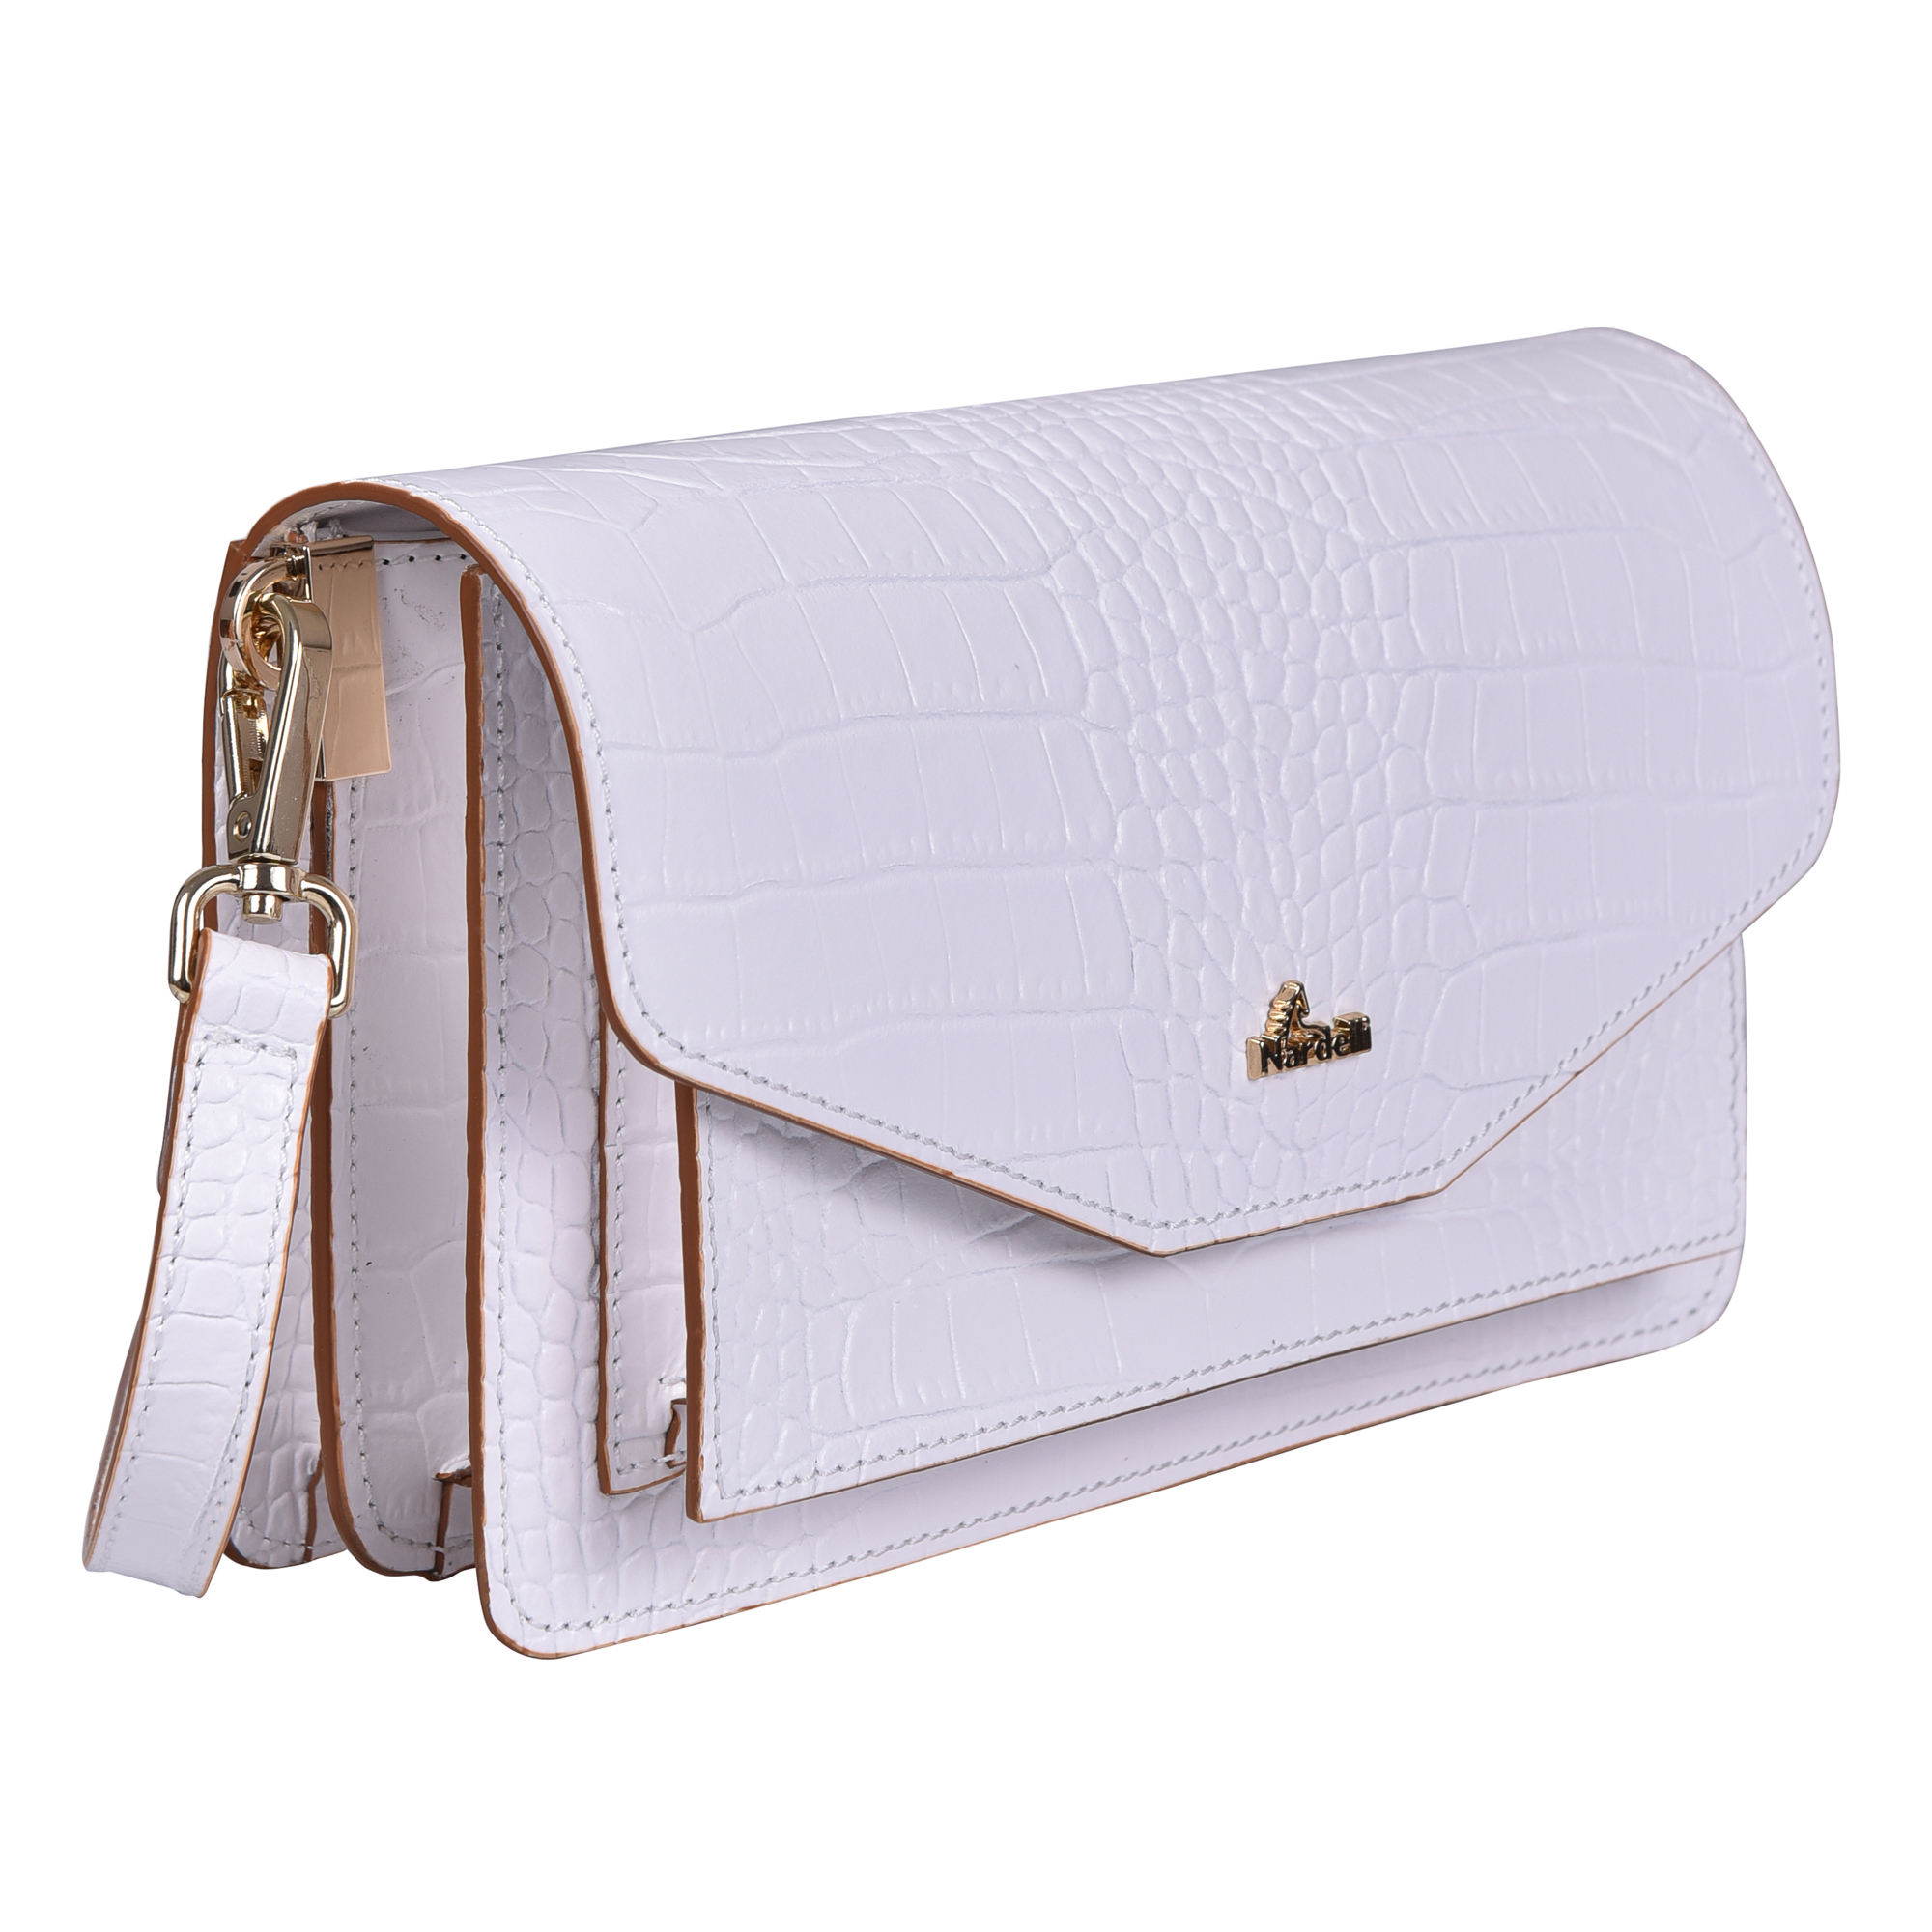 White Custom Design Handle Messenger Bag Envelope Purse Women Clutch Bag Made In Italy